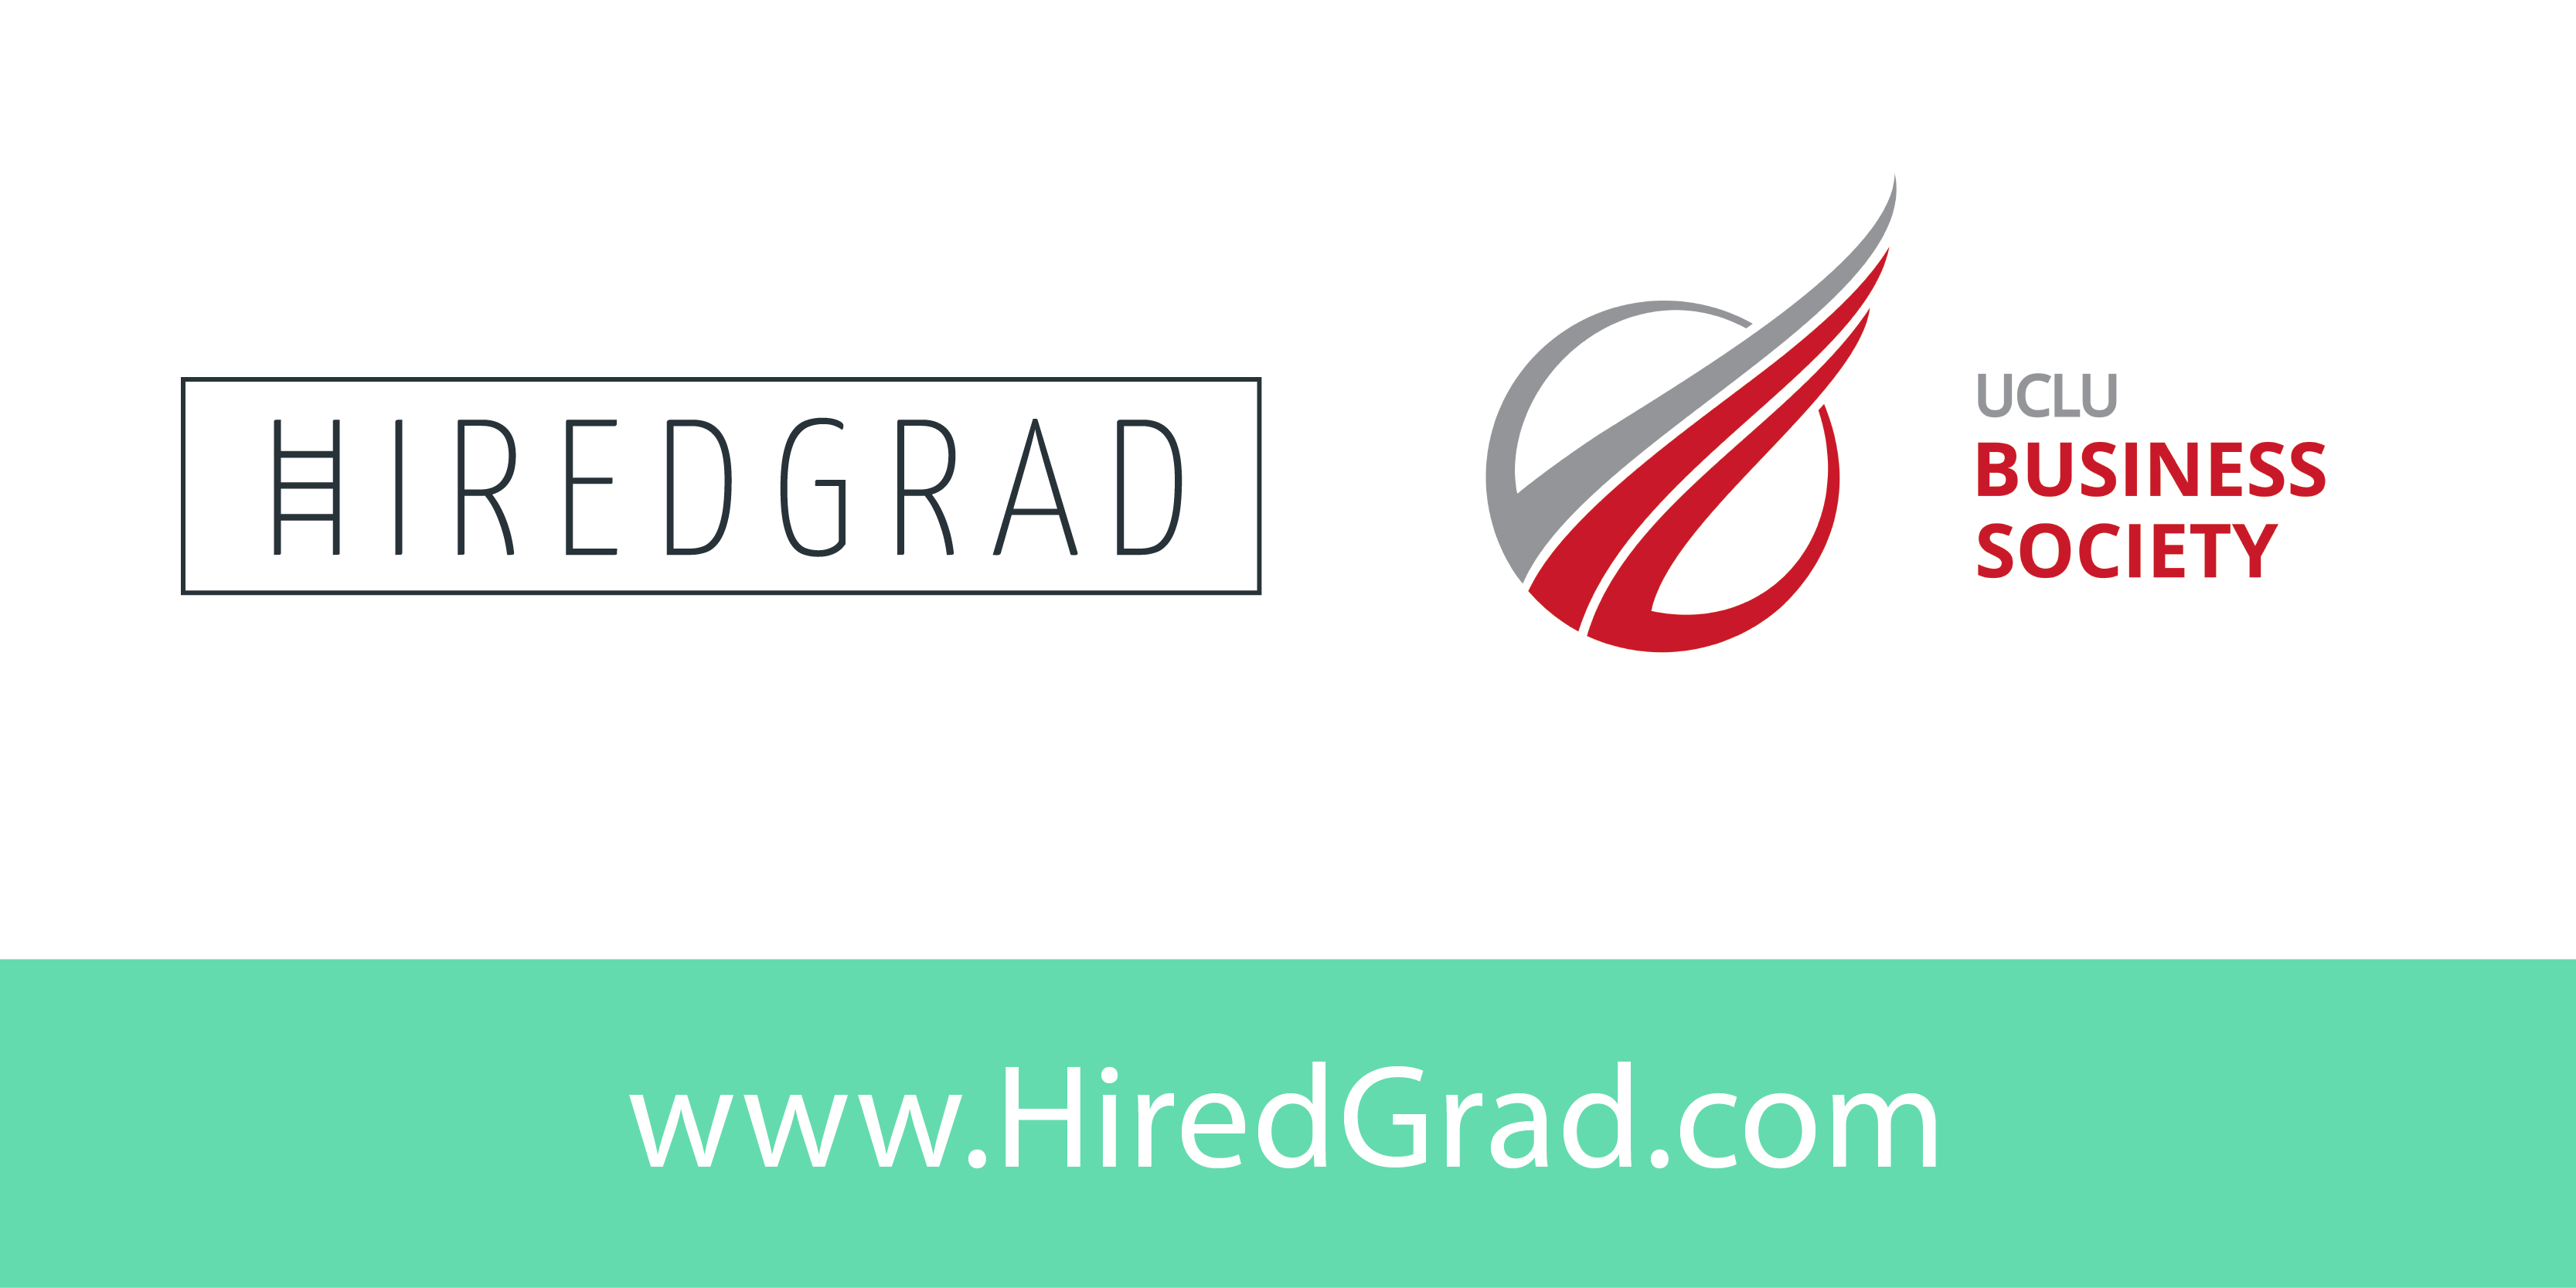 startup jobs hiredgrad ucl tickets wed oct 19 2016 at 6 society is organising an excusive networking event for students graduates and early career professionals looking for jobs in fast growing startups